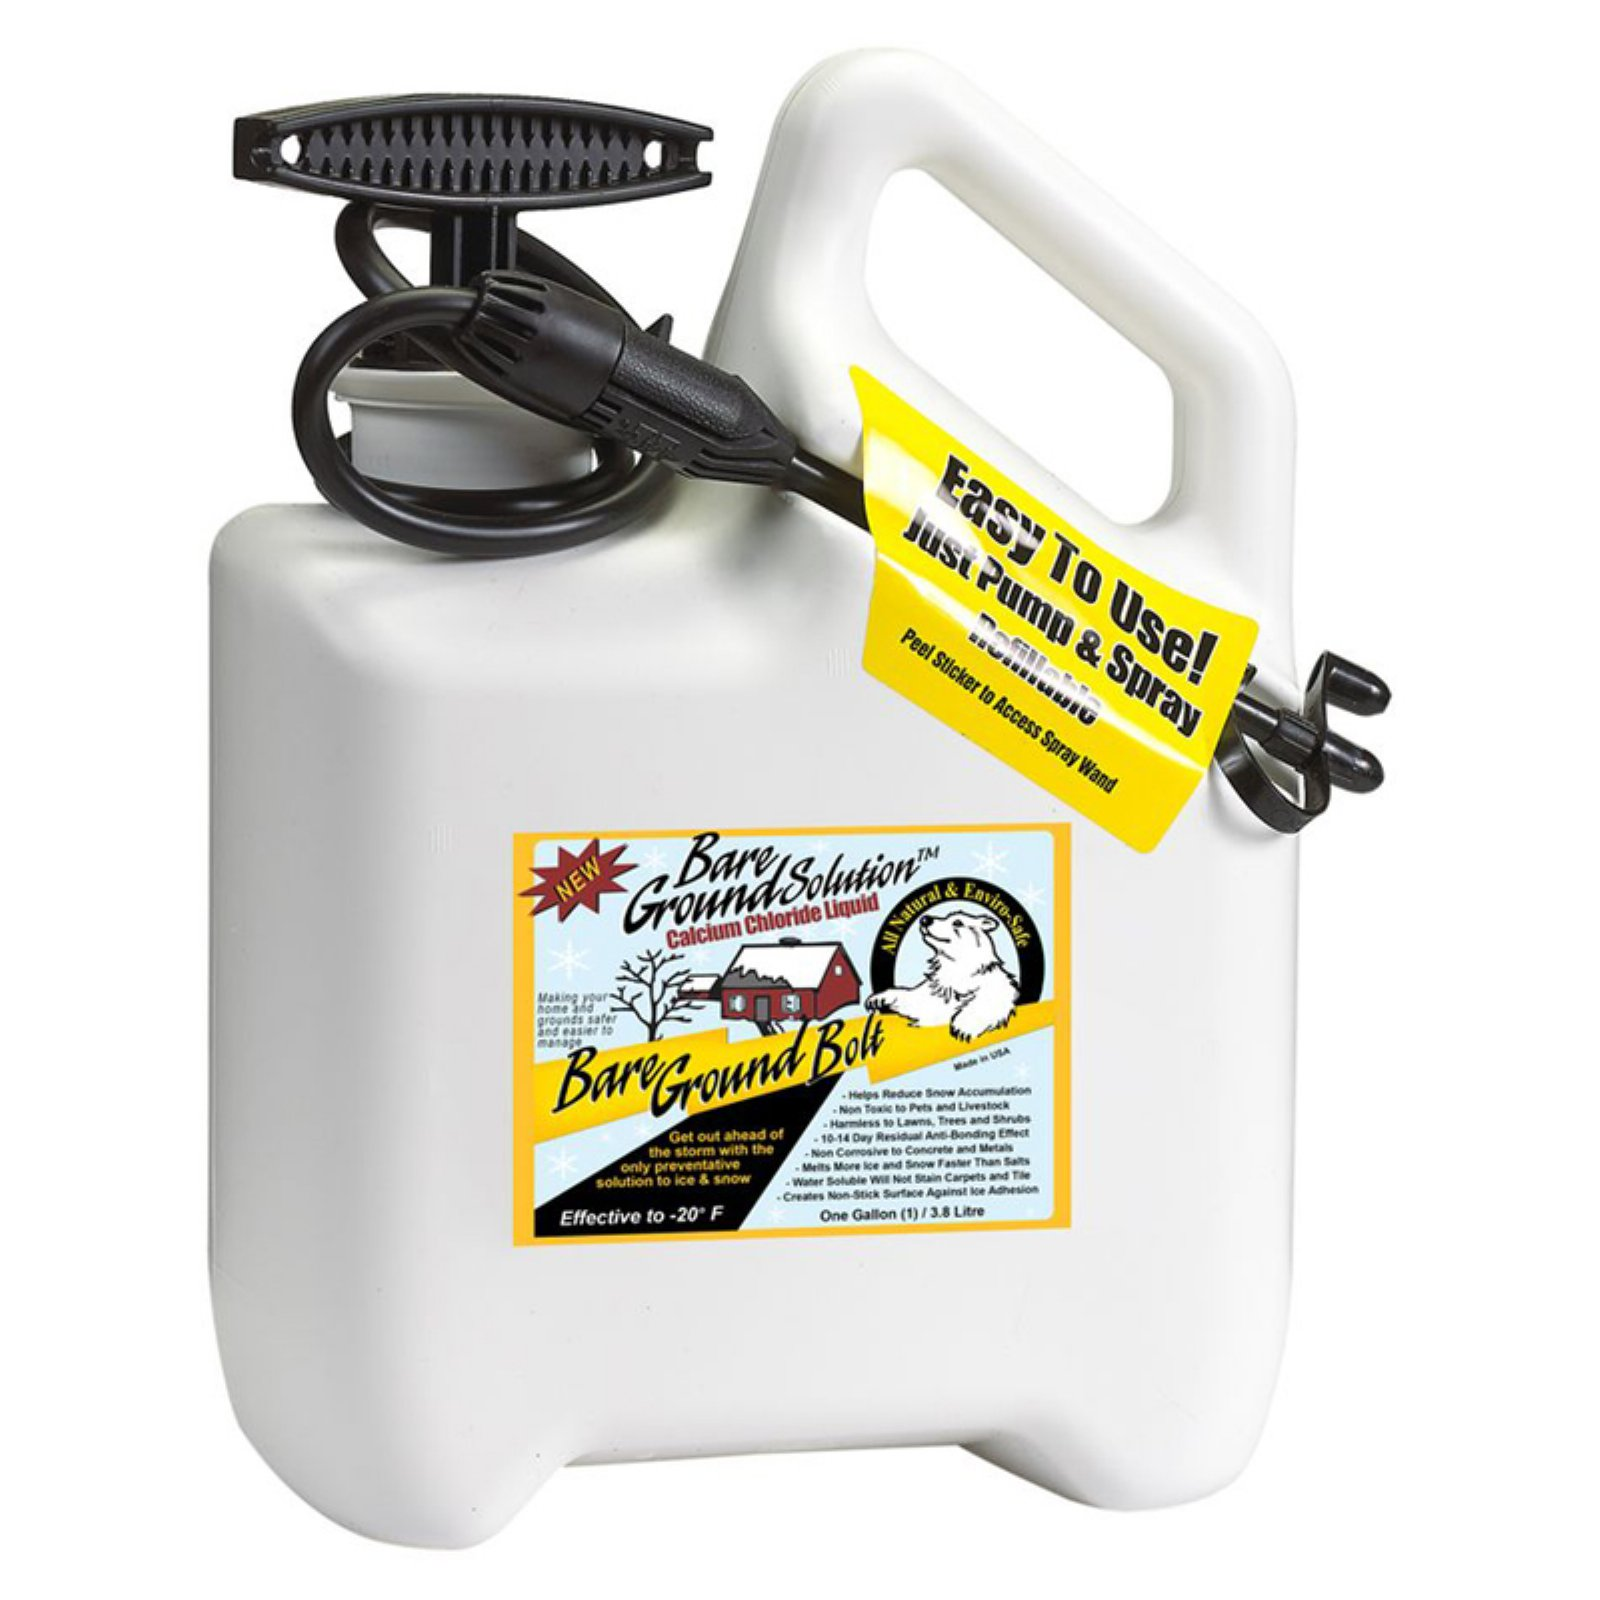 Bare Ground Deluxe System with Pump Sprayer and Calcium Chloride Liquid De-Icer